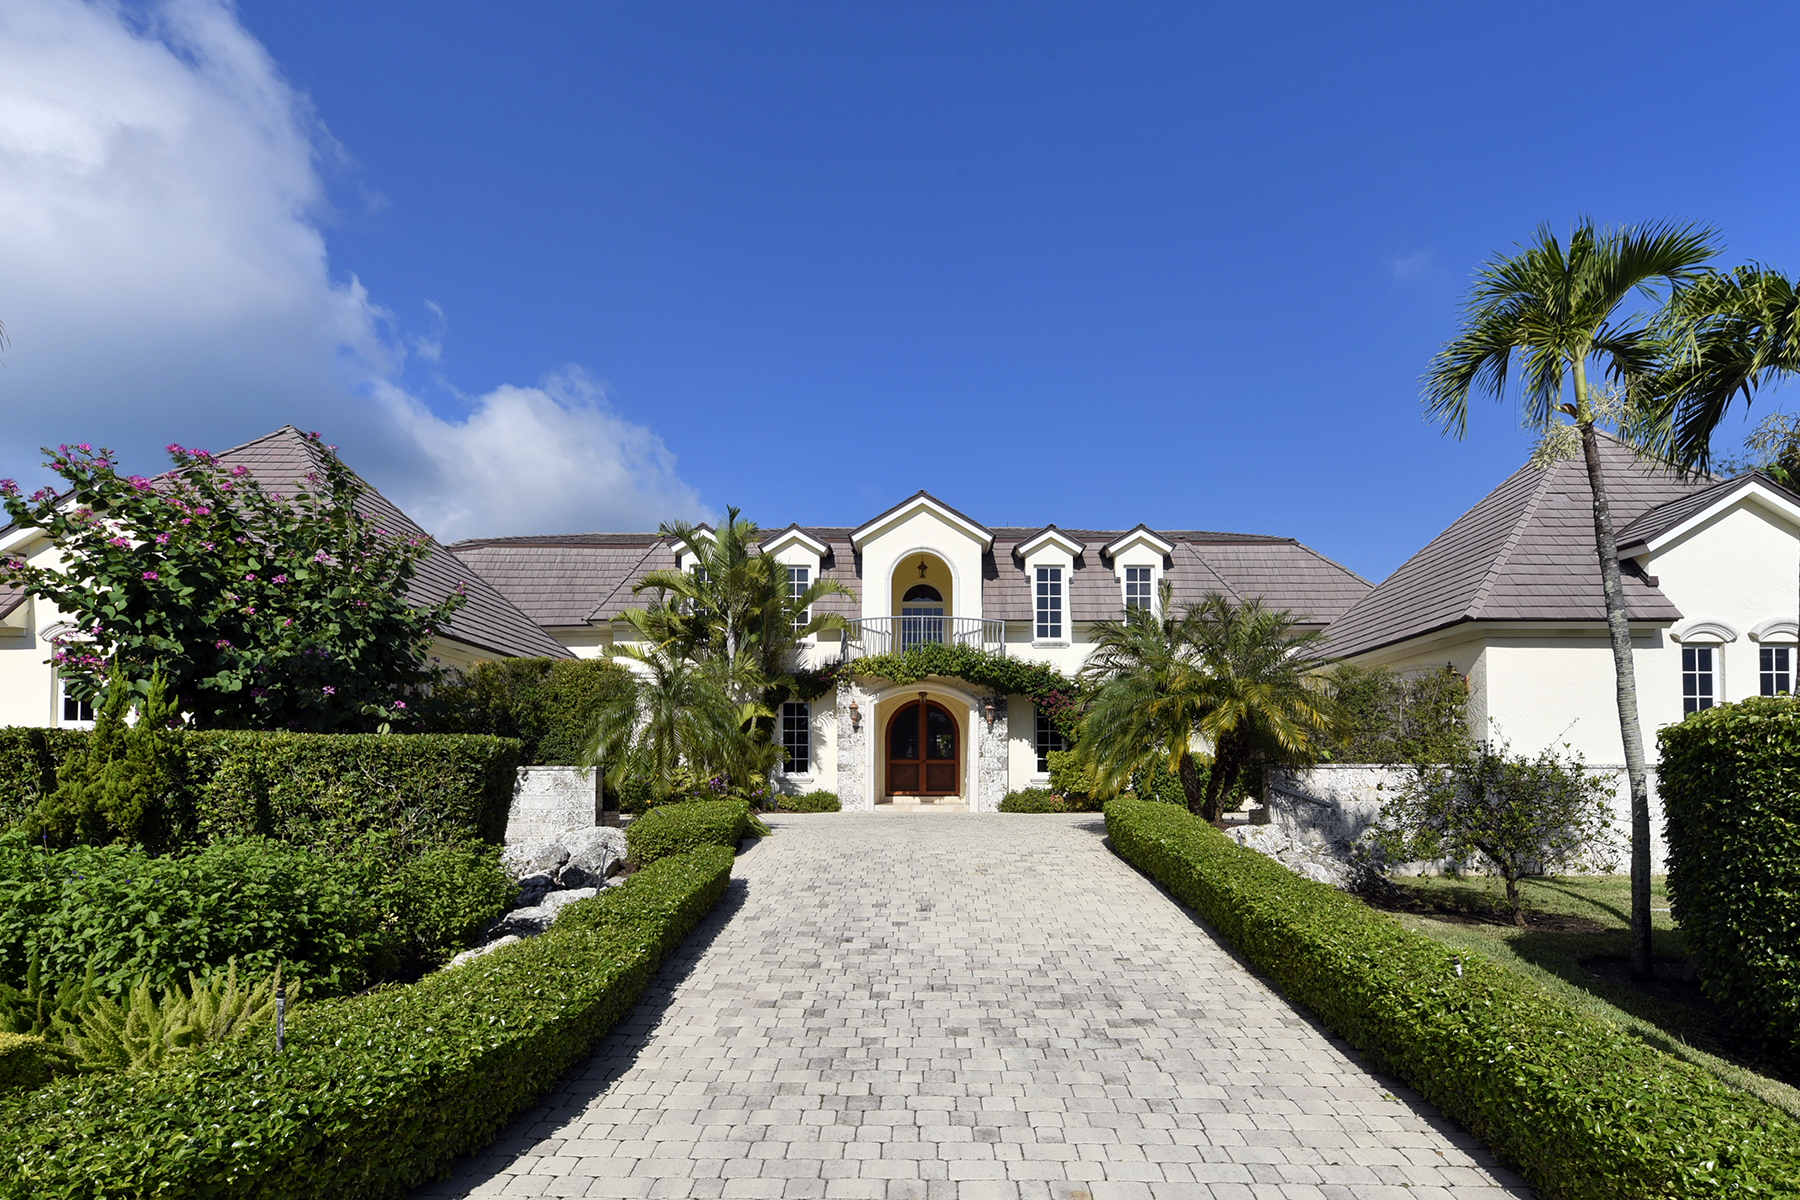 一戸建て のために 売買 アット Expansive Waterfront Home at Ocean Reef 25 Bay Ridge Road Ocean Reef Community, Key Largo, フロリダ, 33037 アメリカ合衆国